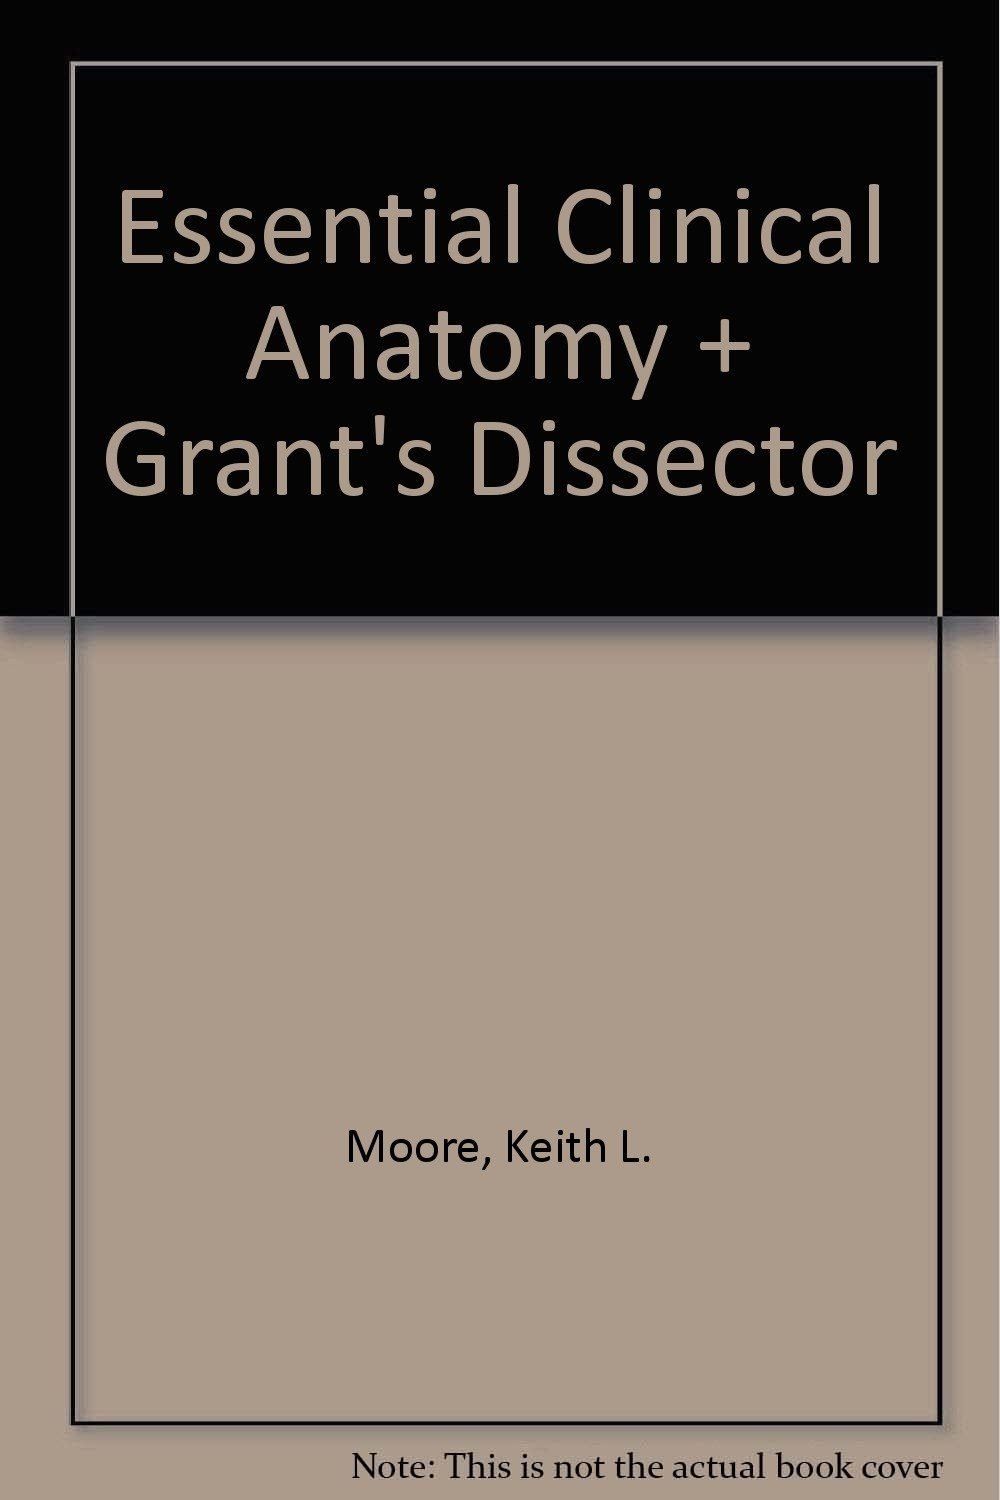 Old Fashioned Clinical Anatomy By Moore Collection - Human Anatomy ...